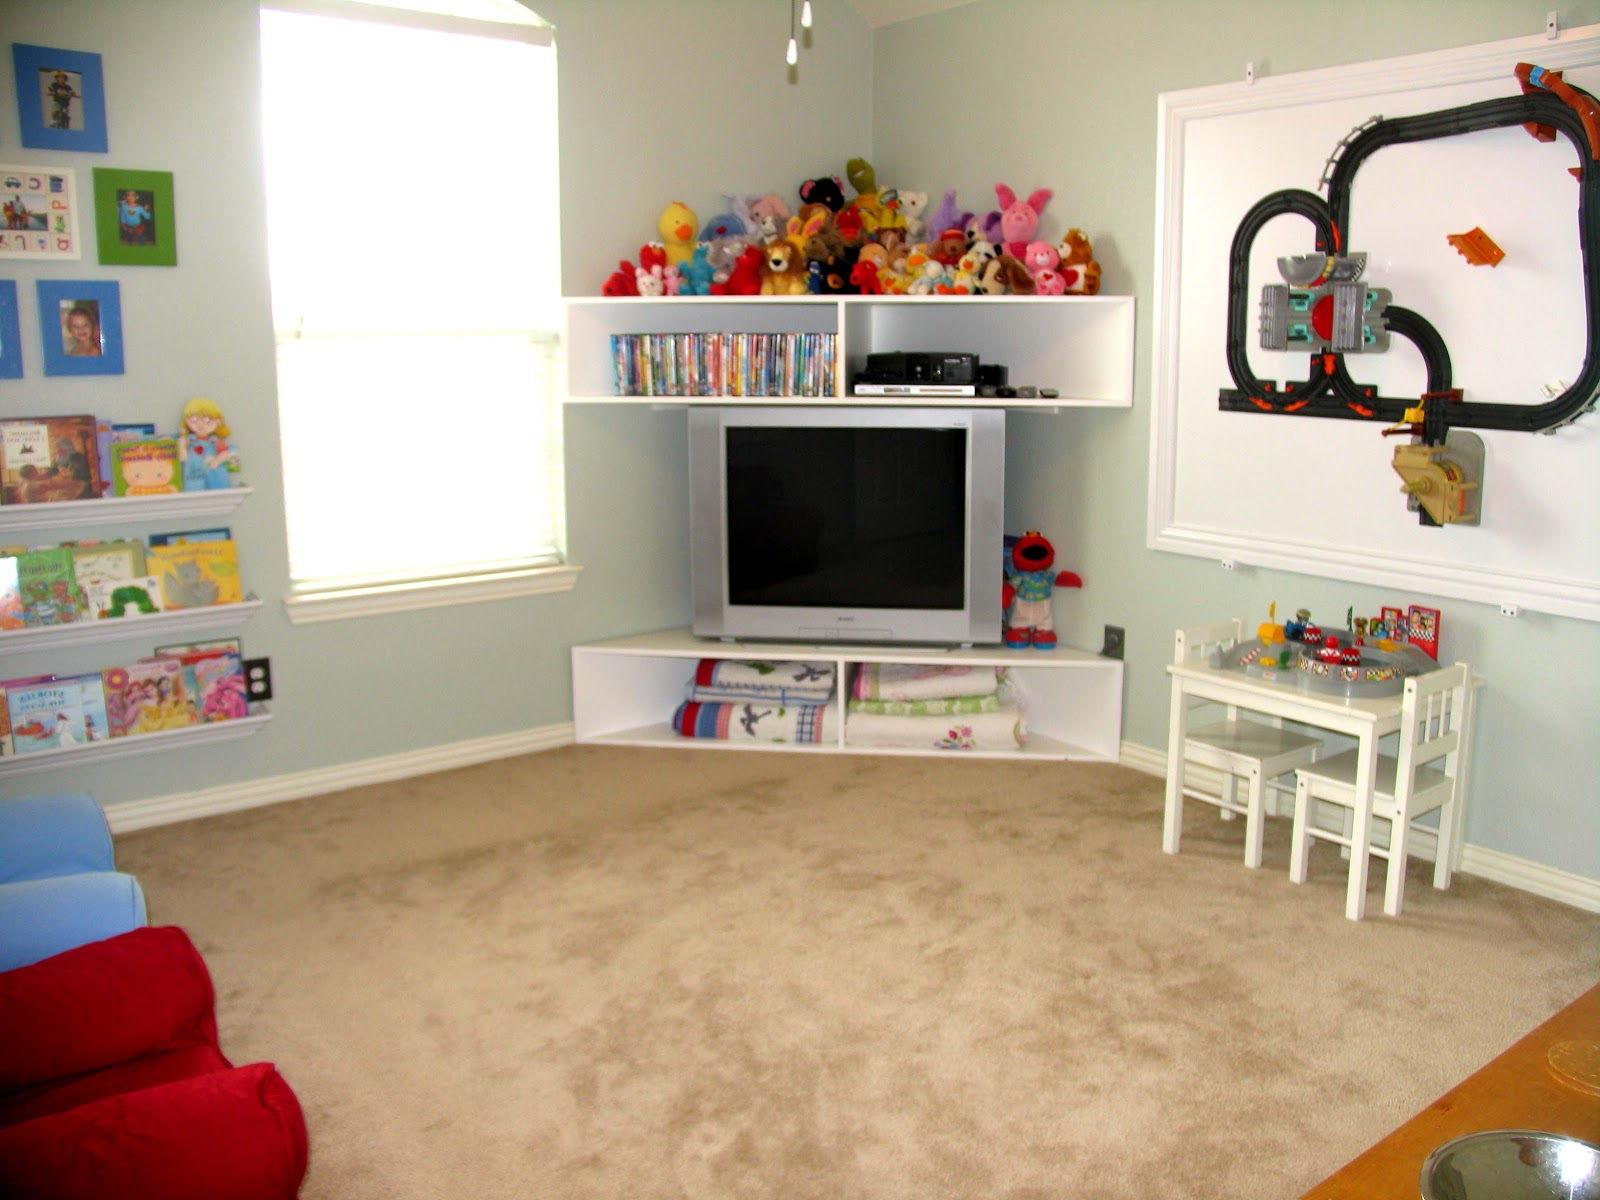 Best Woodworking Plans Free: Pottery Barn Kids Train Table Wooden Plans Throughout Well Known Playroom Tv Stands (Gallery 19 of 20)